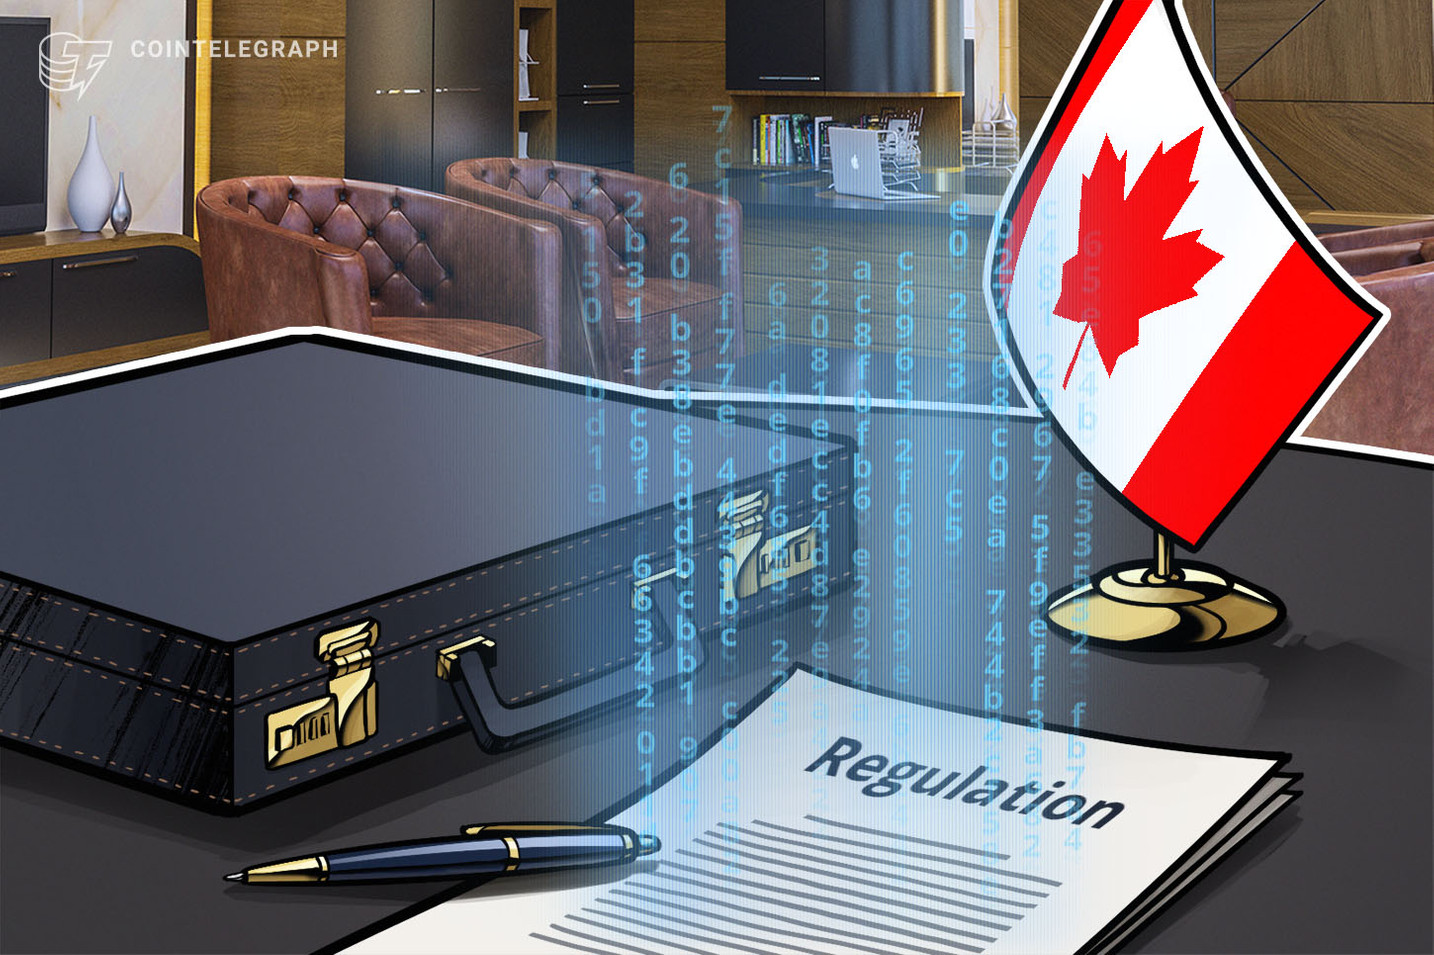 El regulador canadiense publica una nueva guía para los exchanges de criptomonedas